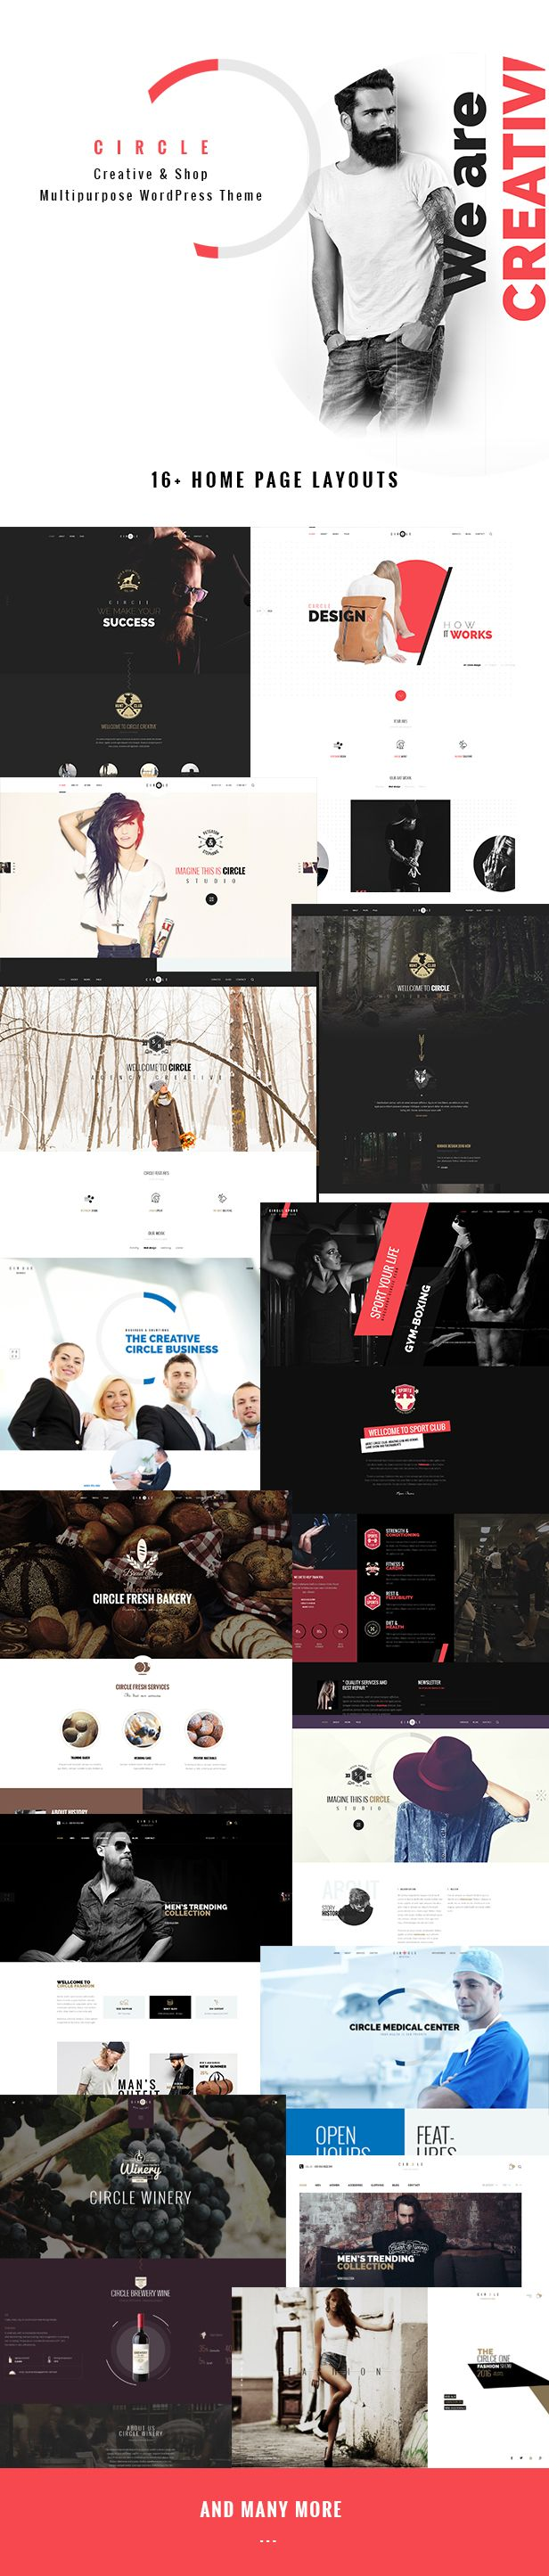 Circle is an all-purpose, inspiring, exquisite WordPress theme built with an intuitive design and ultimate core features to help you realize your dream website without touching a line of code.